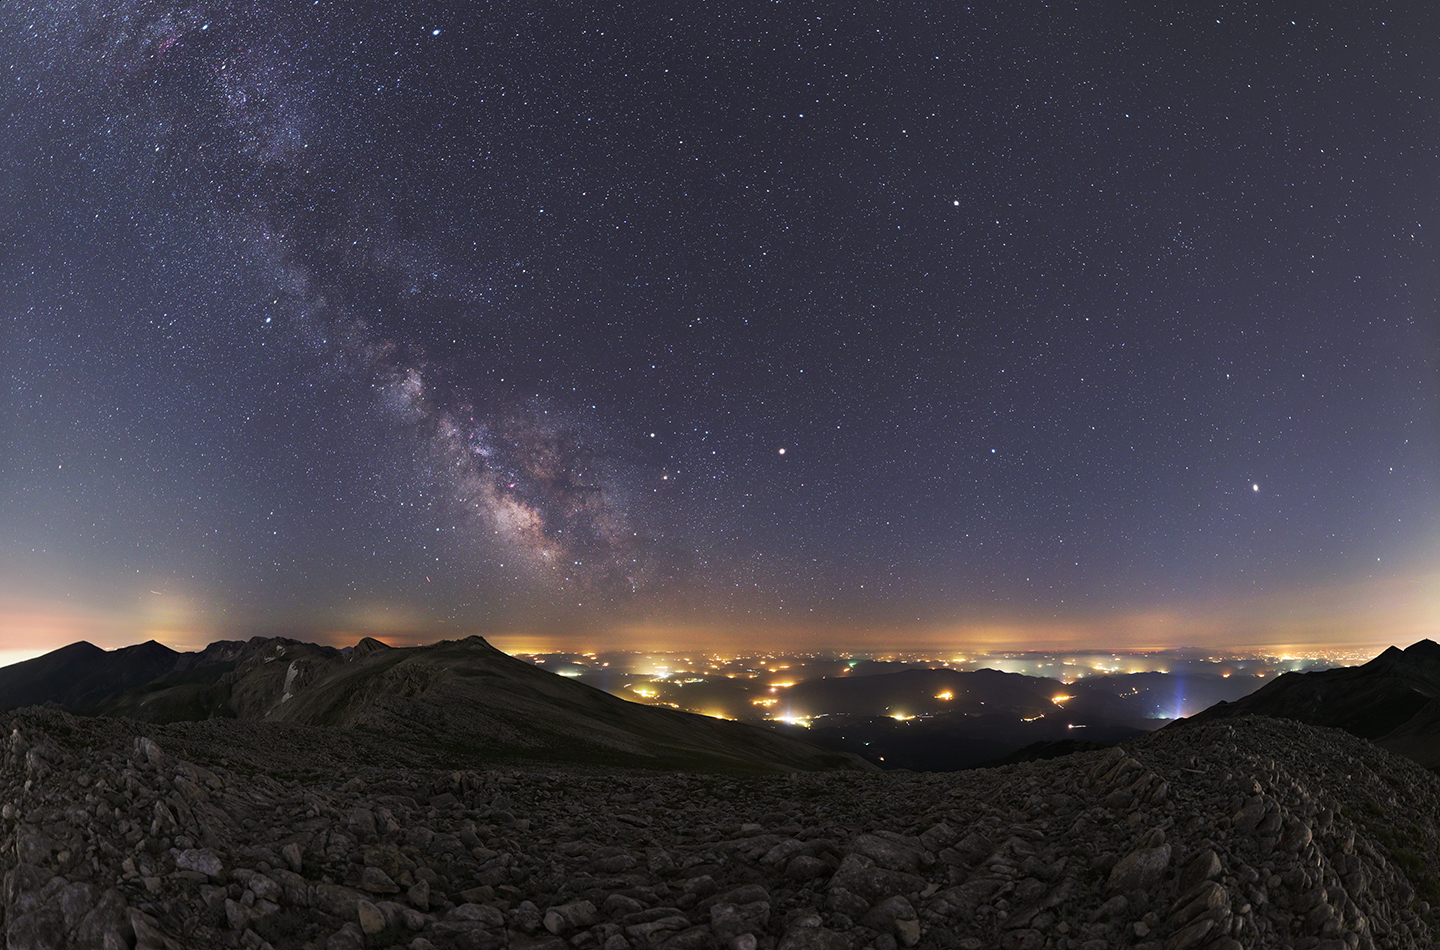 2016 July 23 - Summer Planets and Milky Way